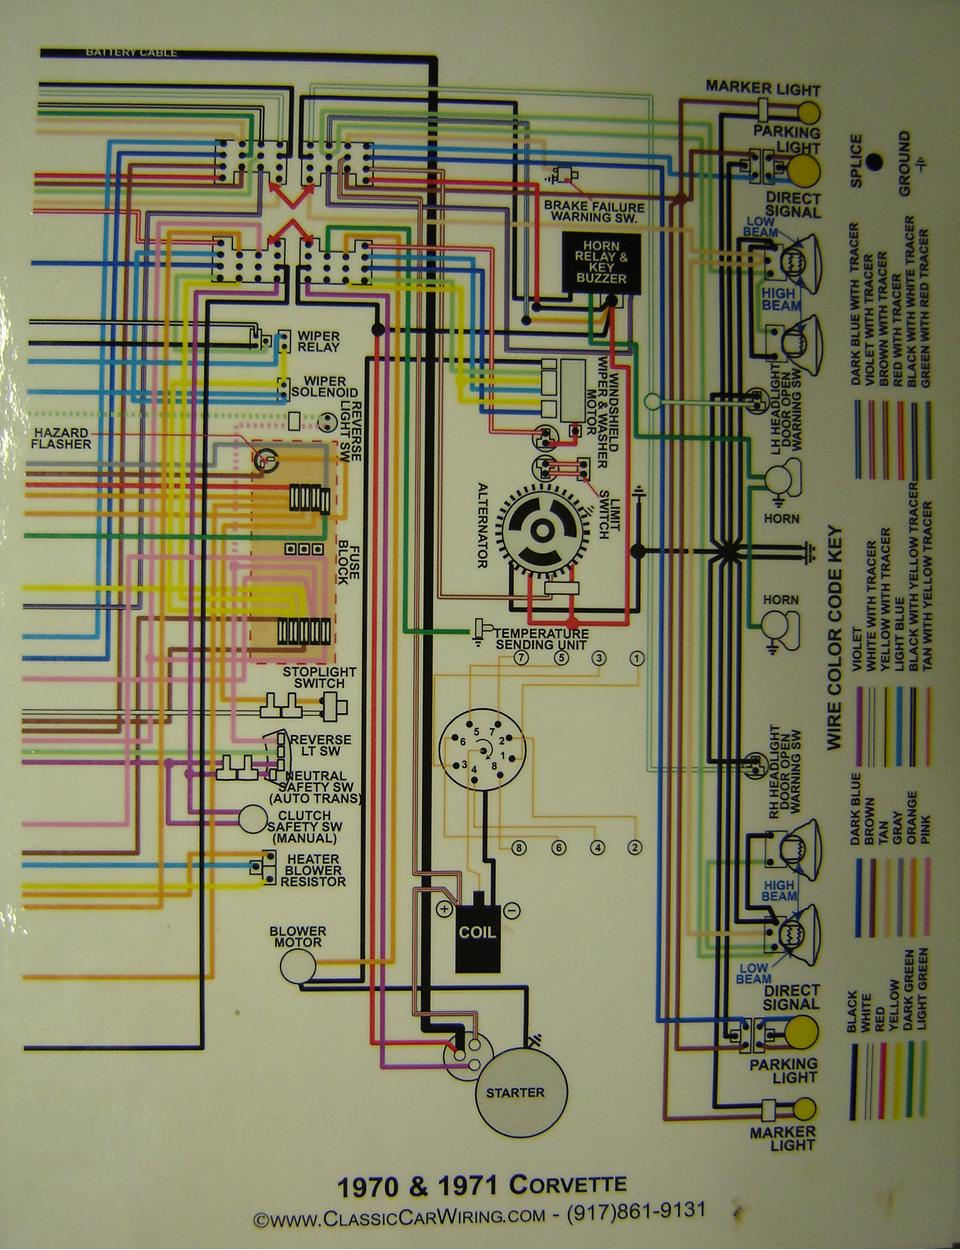 1970 71 corvette color wiring diagram B chevy diagrams 1984 El Camino Wiring-Diagram at readyjetset.co